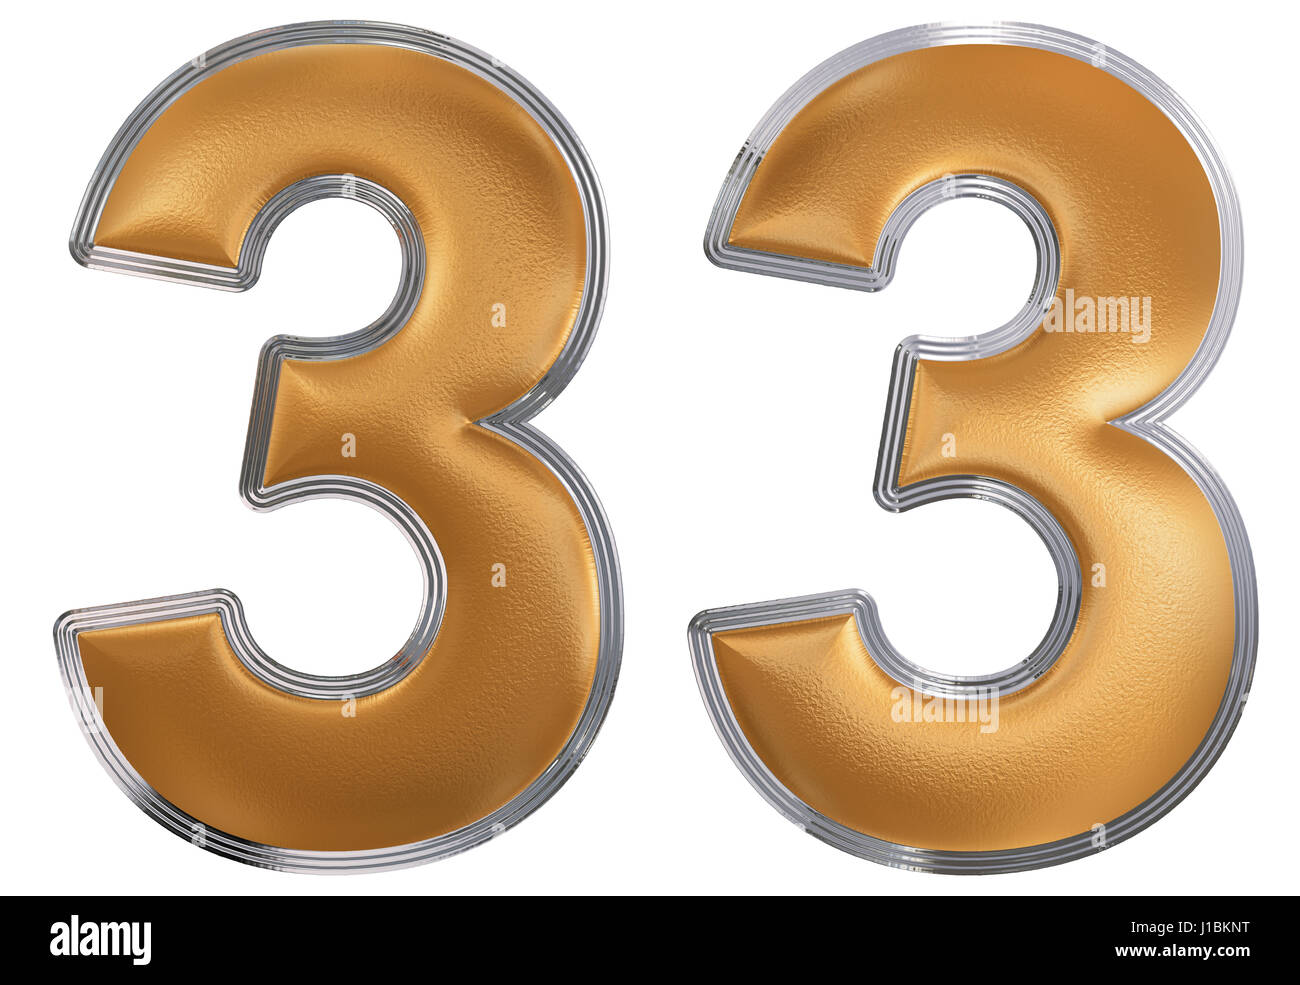 Number 33 free picture of the number thirty three - Numeral 33 Thirty Three Isolated On White Background 3d Render